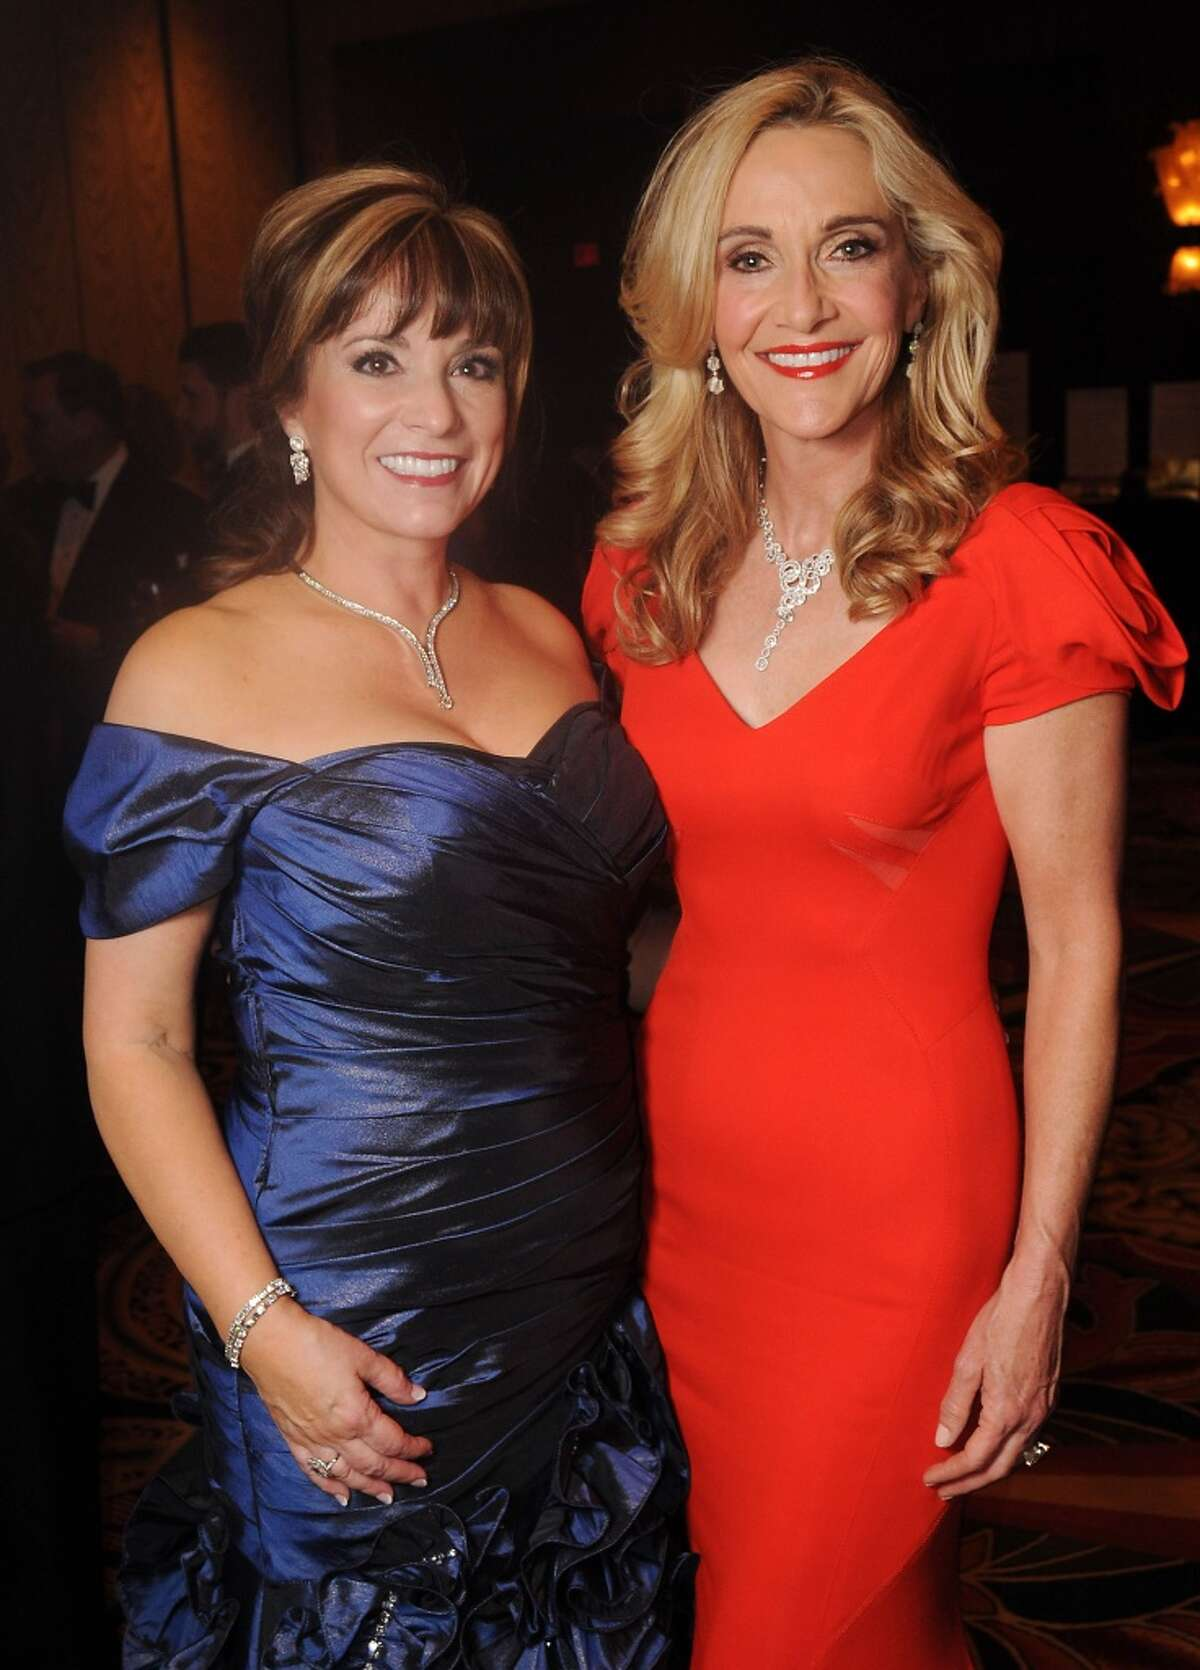 Women of Distinction Pamela Wright and Jana Arnoldy at the Winter Ball at the Hilton Americas Hotel Saturday Jan. 26.